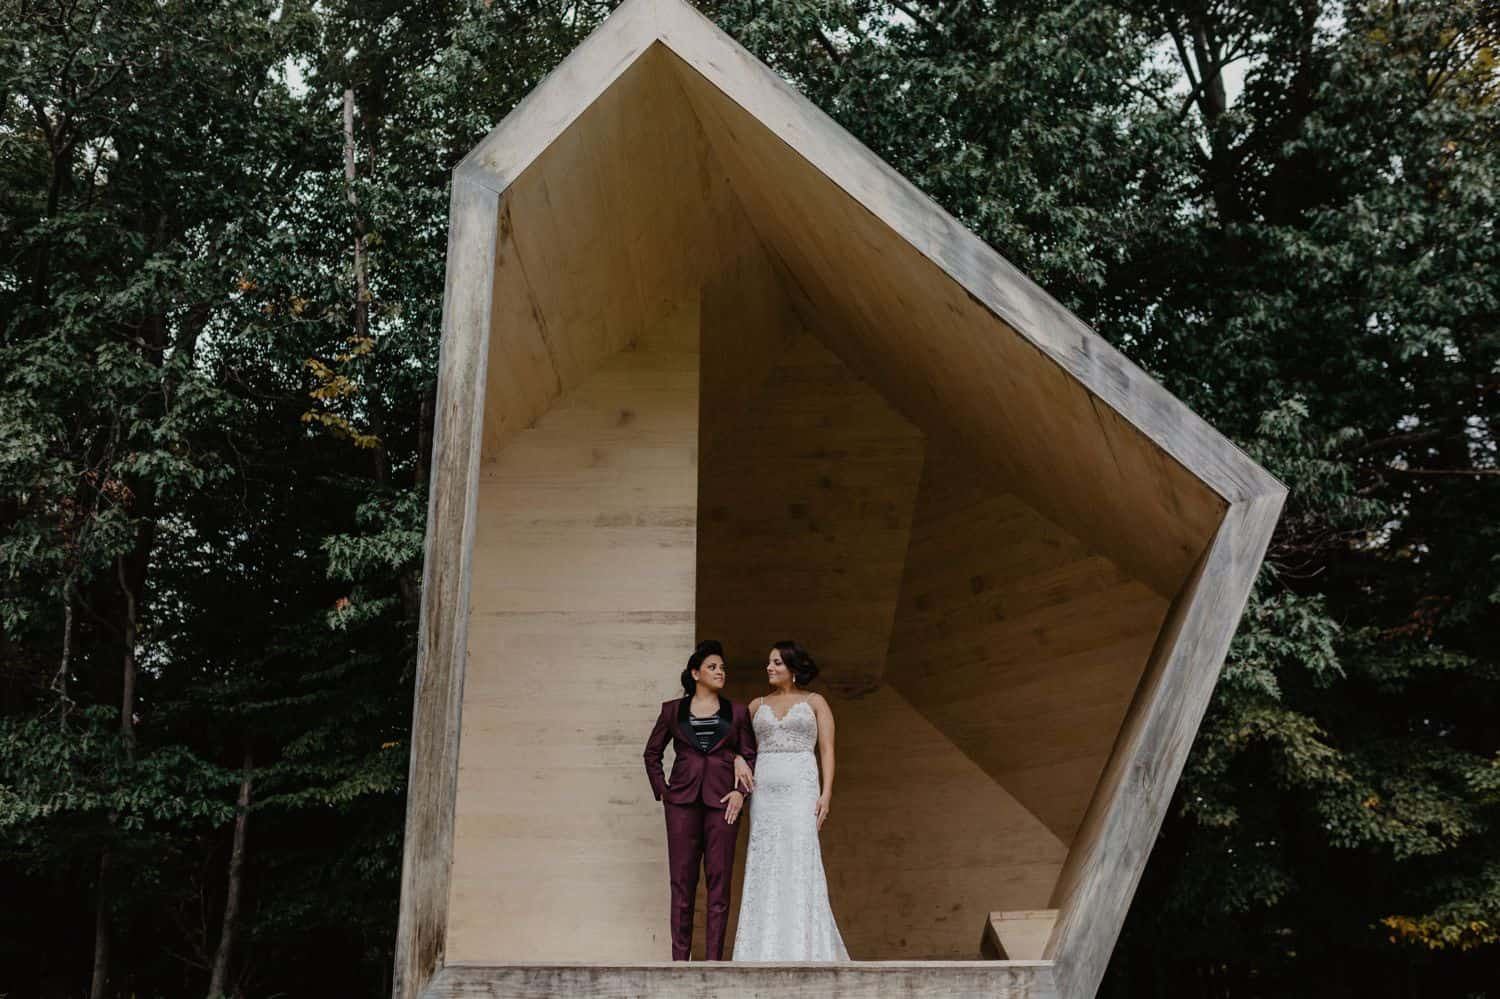 Two women stand in a geometric structure on their wedding day for portraits